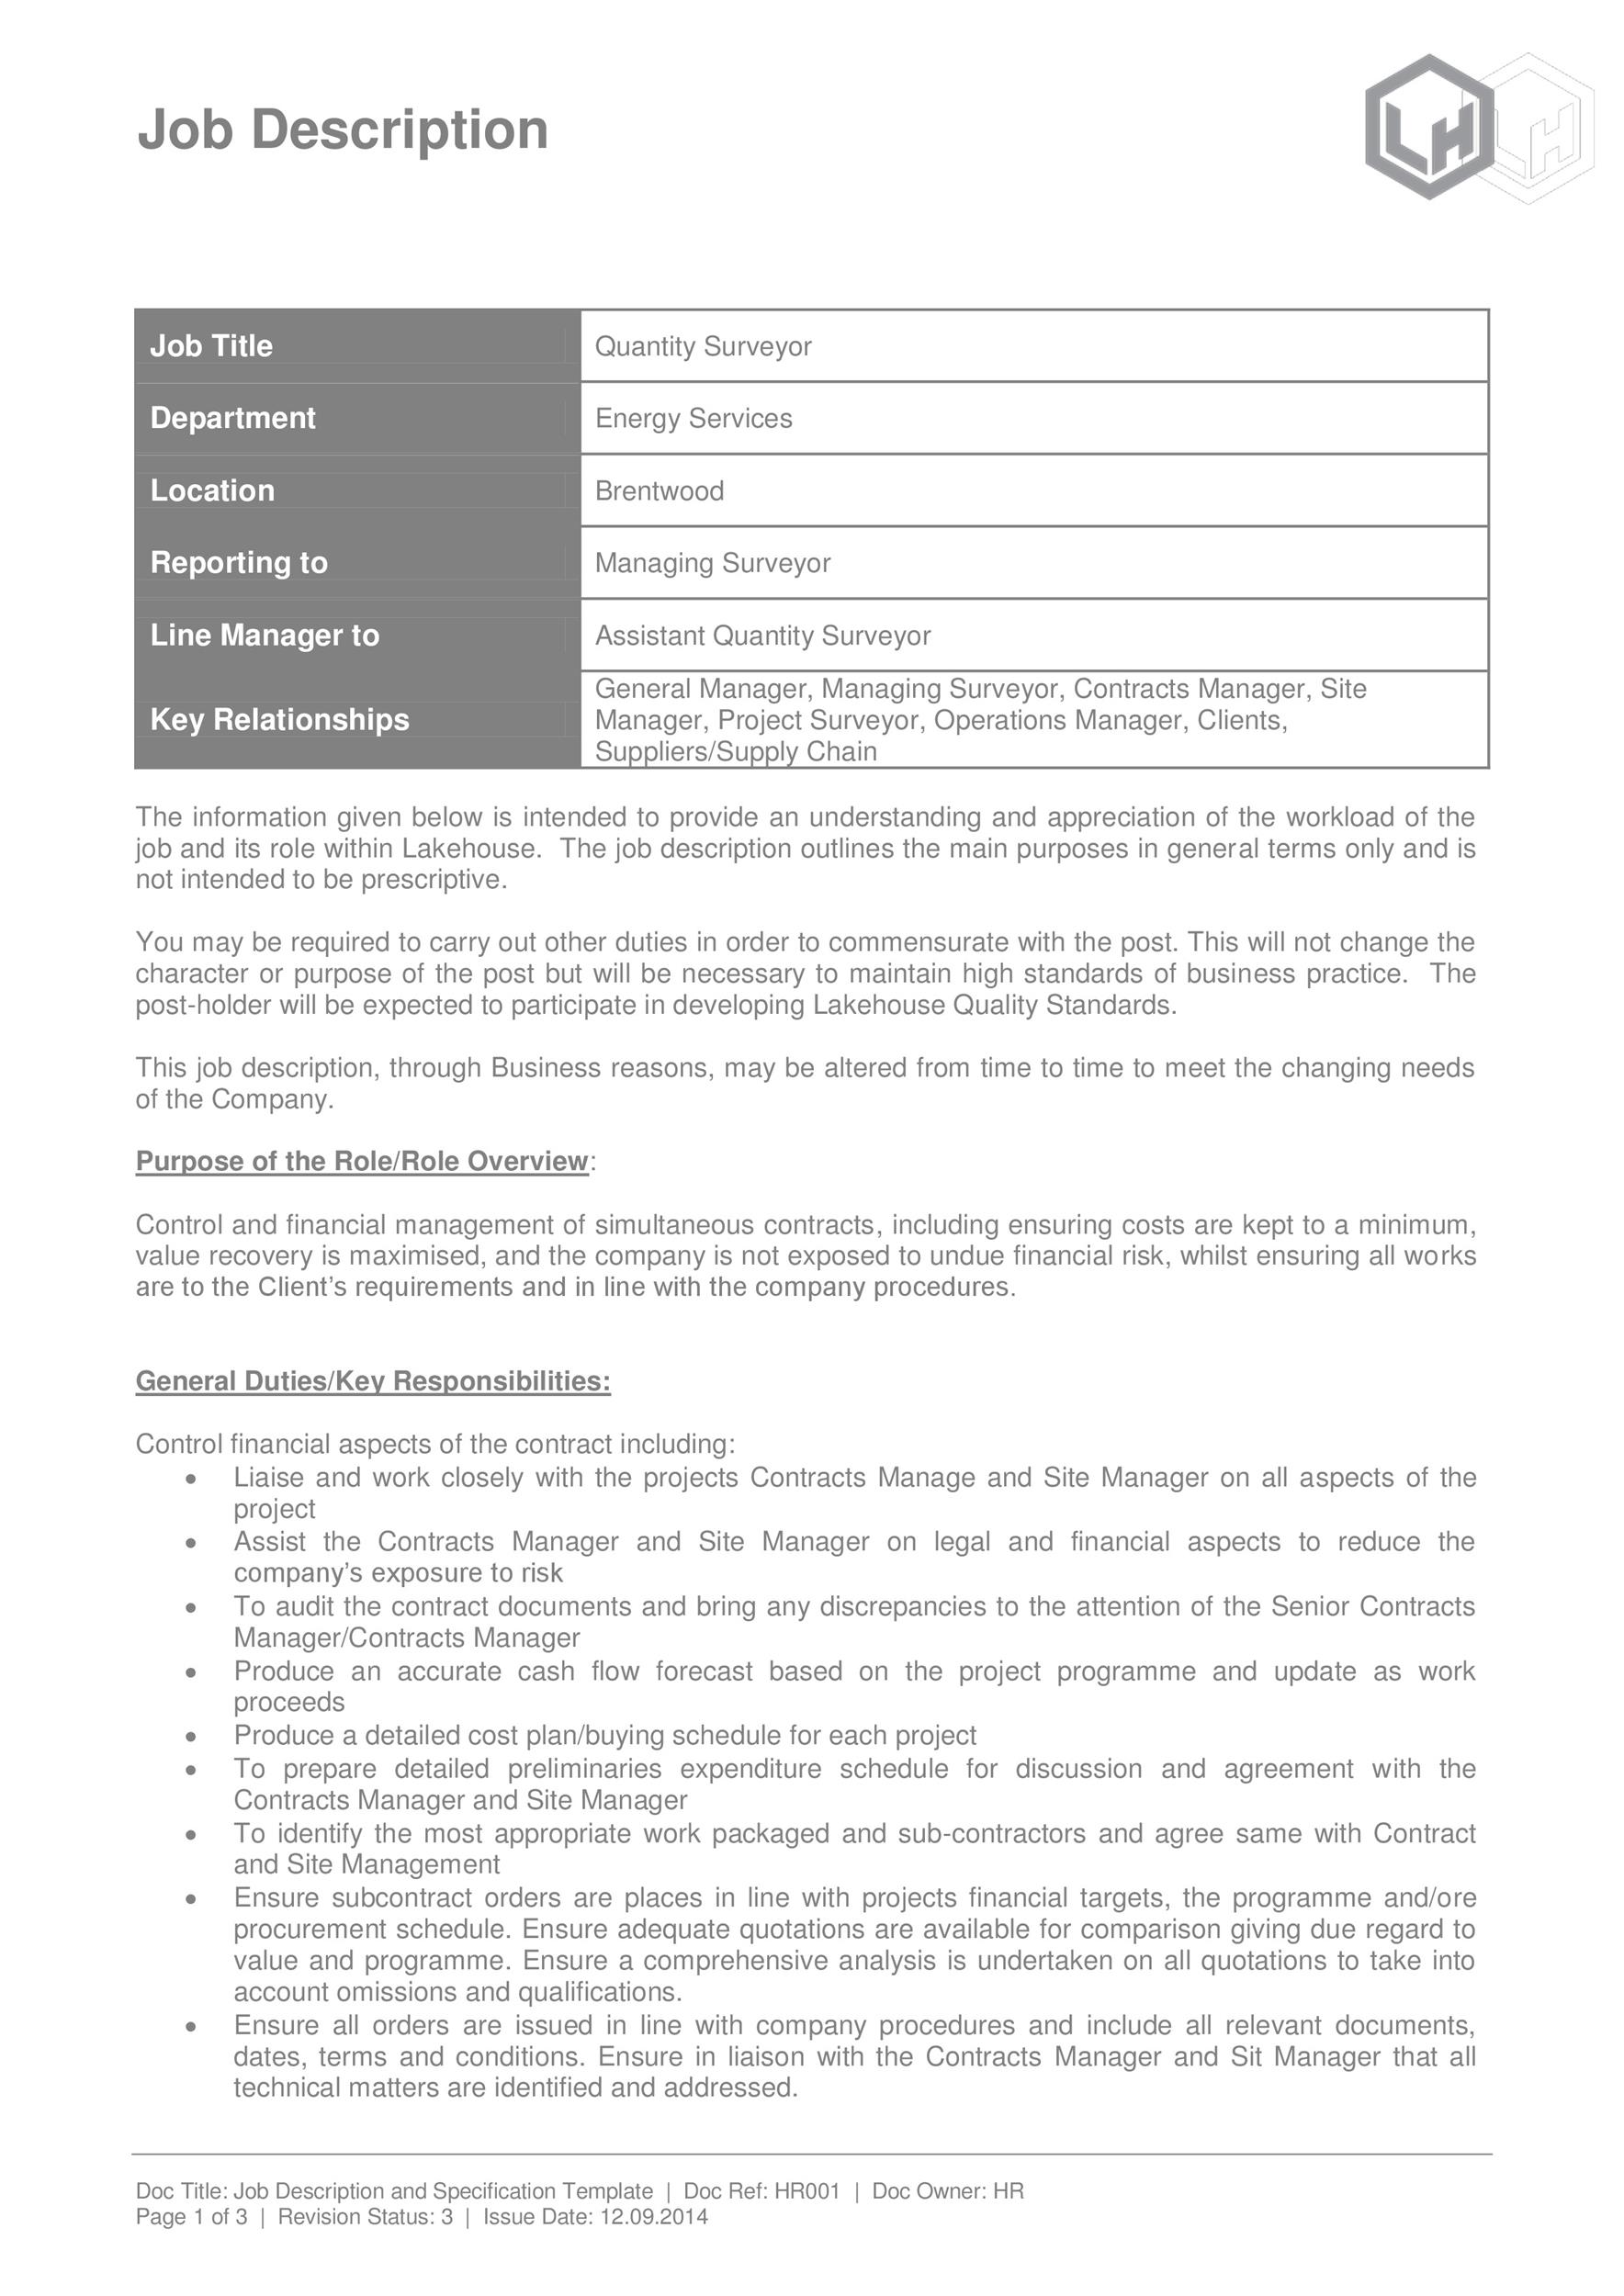 47 job description templates examples template lab free job description template 13 wajeb Image collections